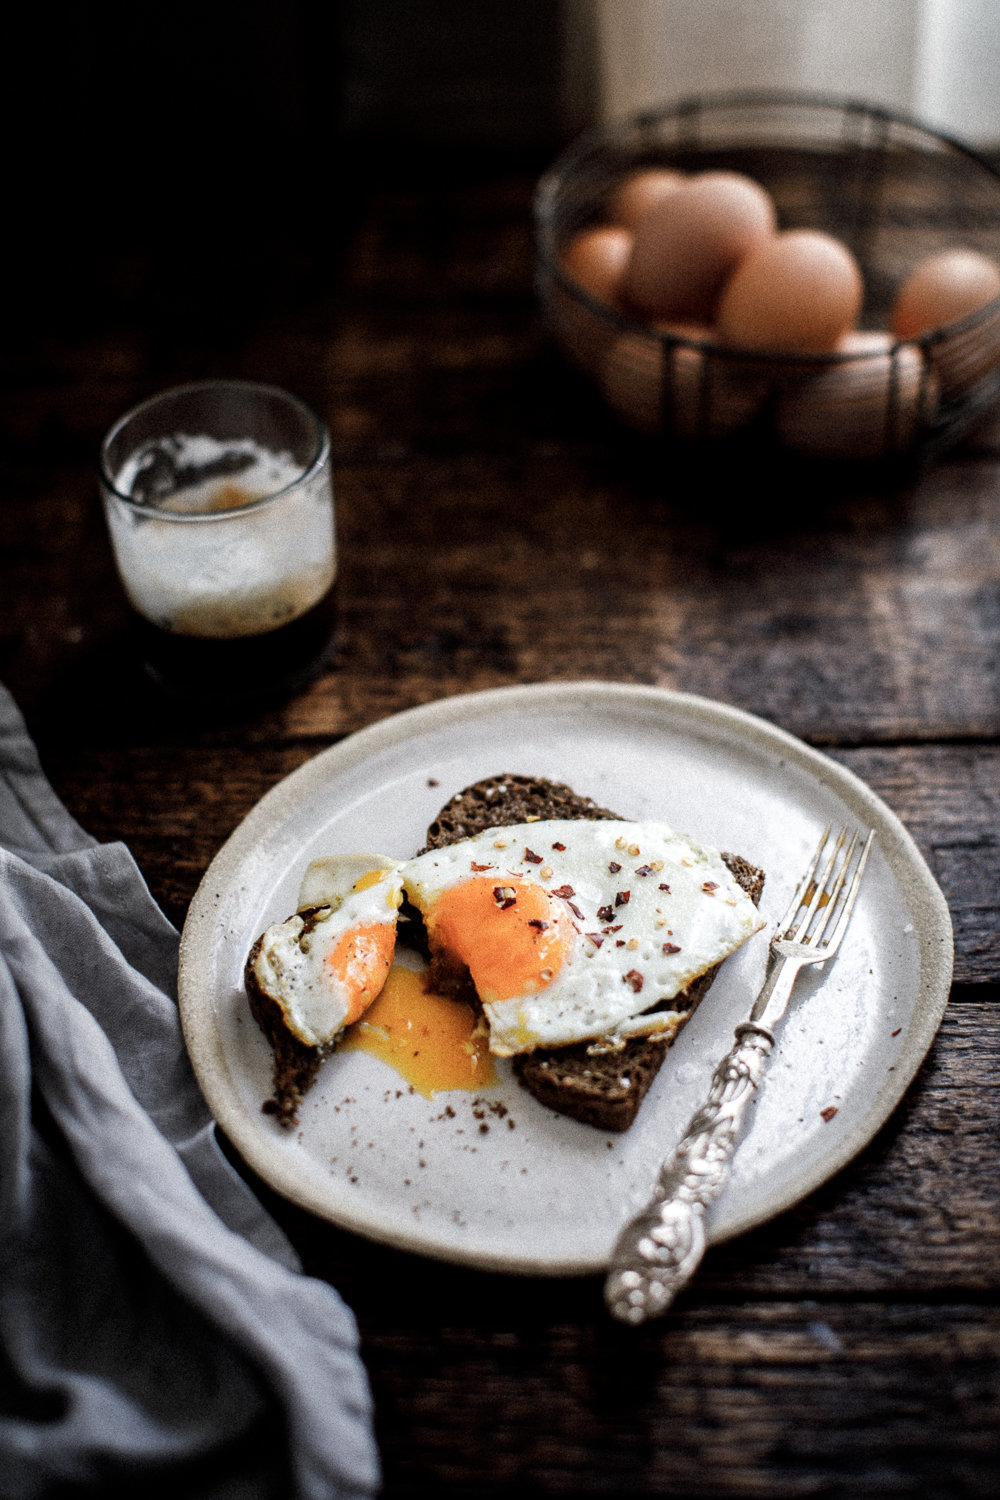 Eggs & Coffee - Anisa Sabet - The Macadames - Food Travel Lifestyle Photographer-101